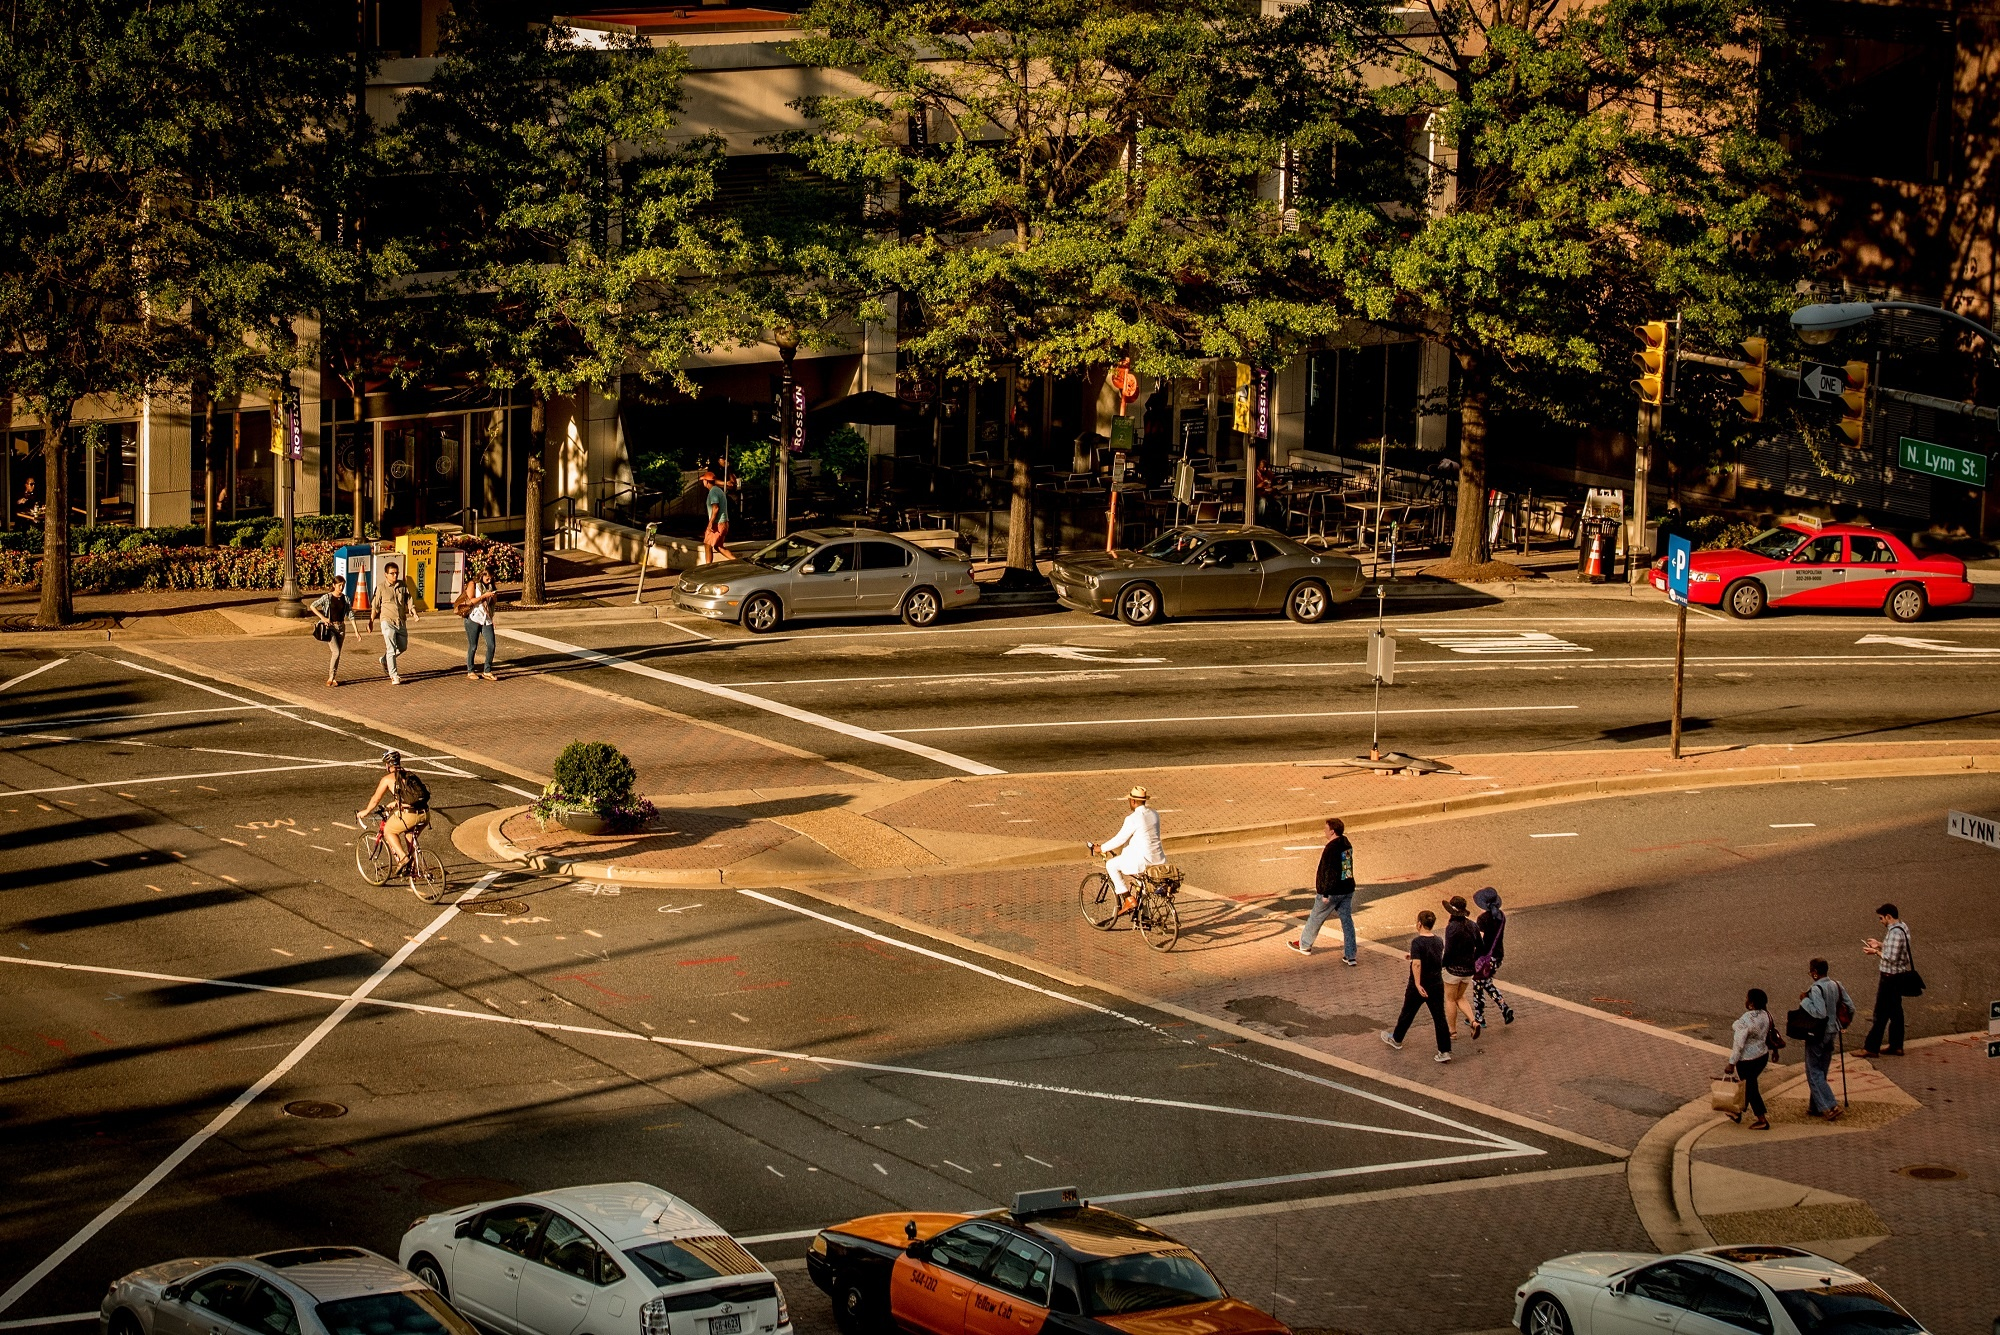 Pedestrians, bikers, and cars sharing the road